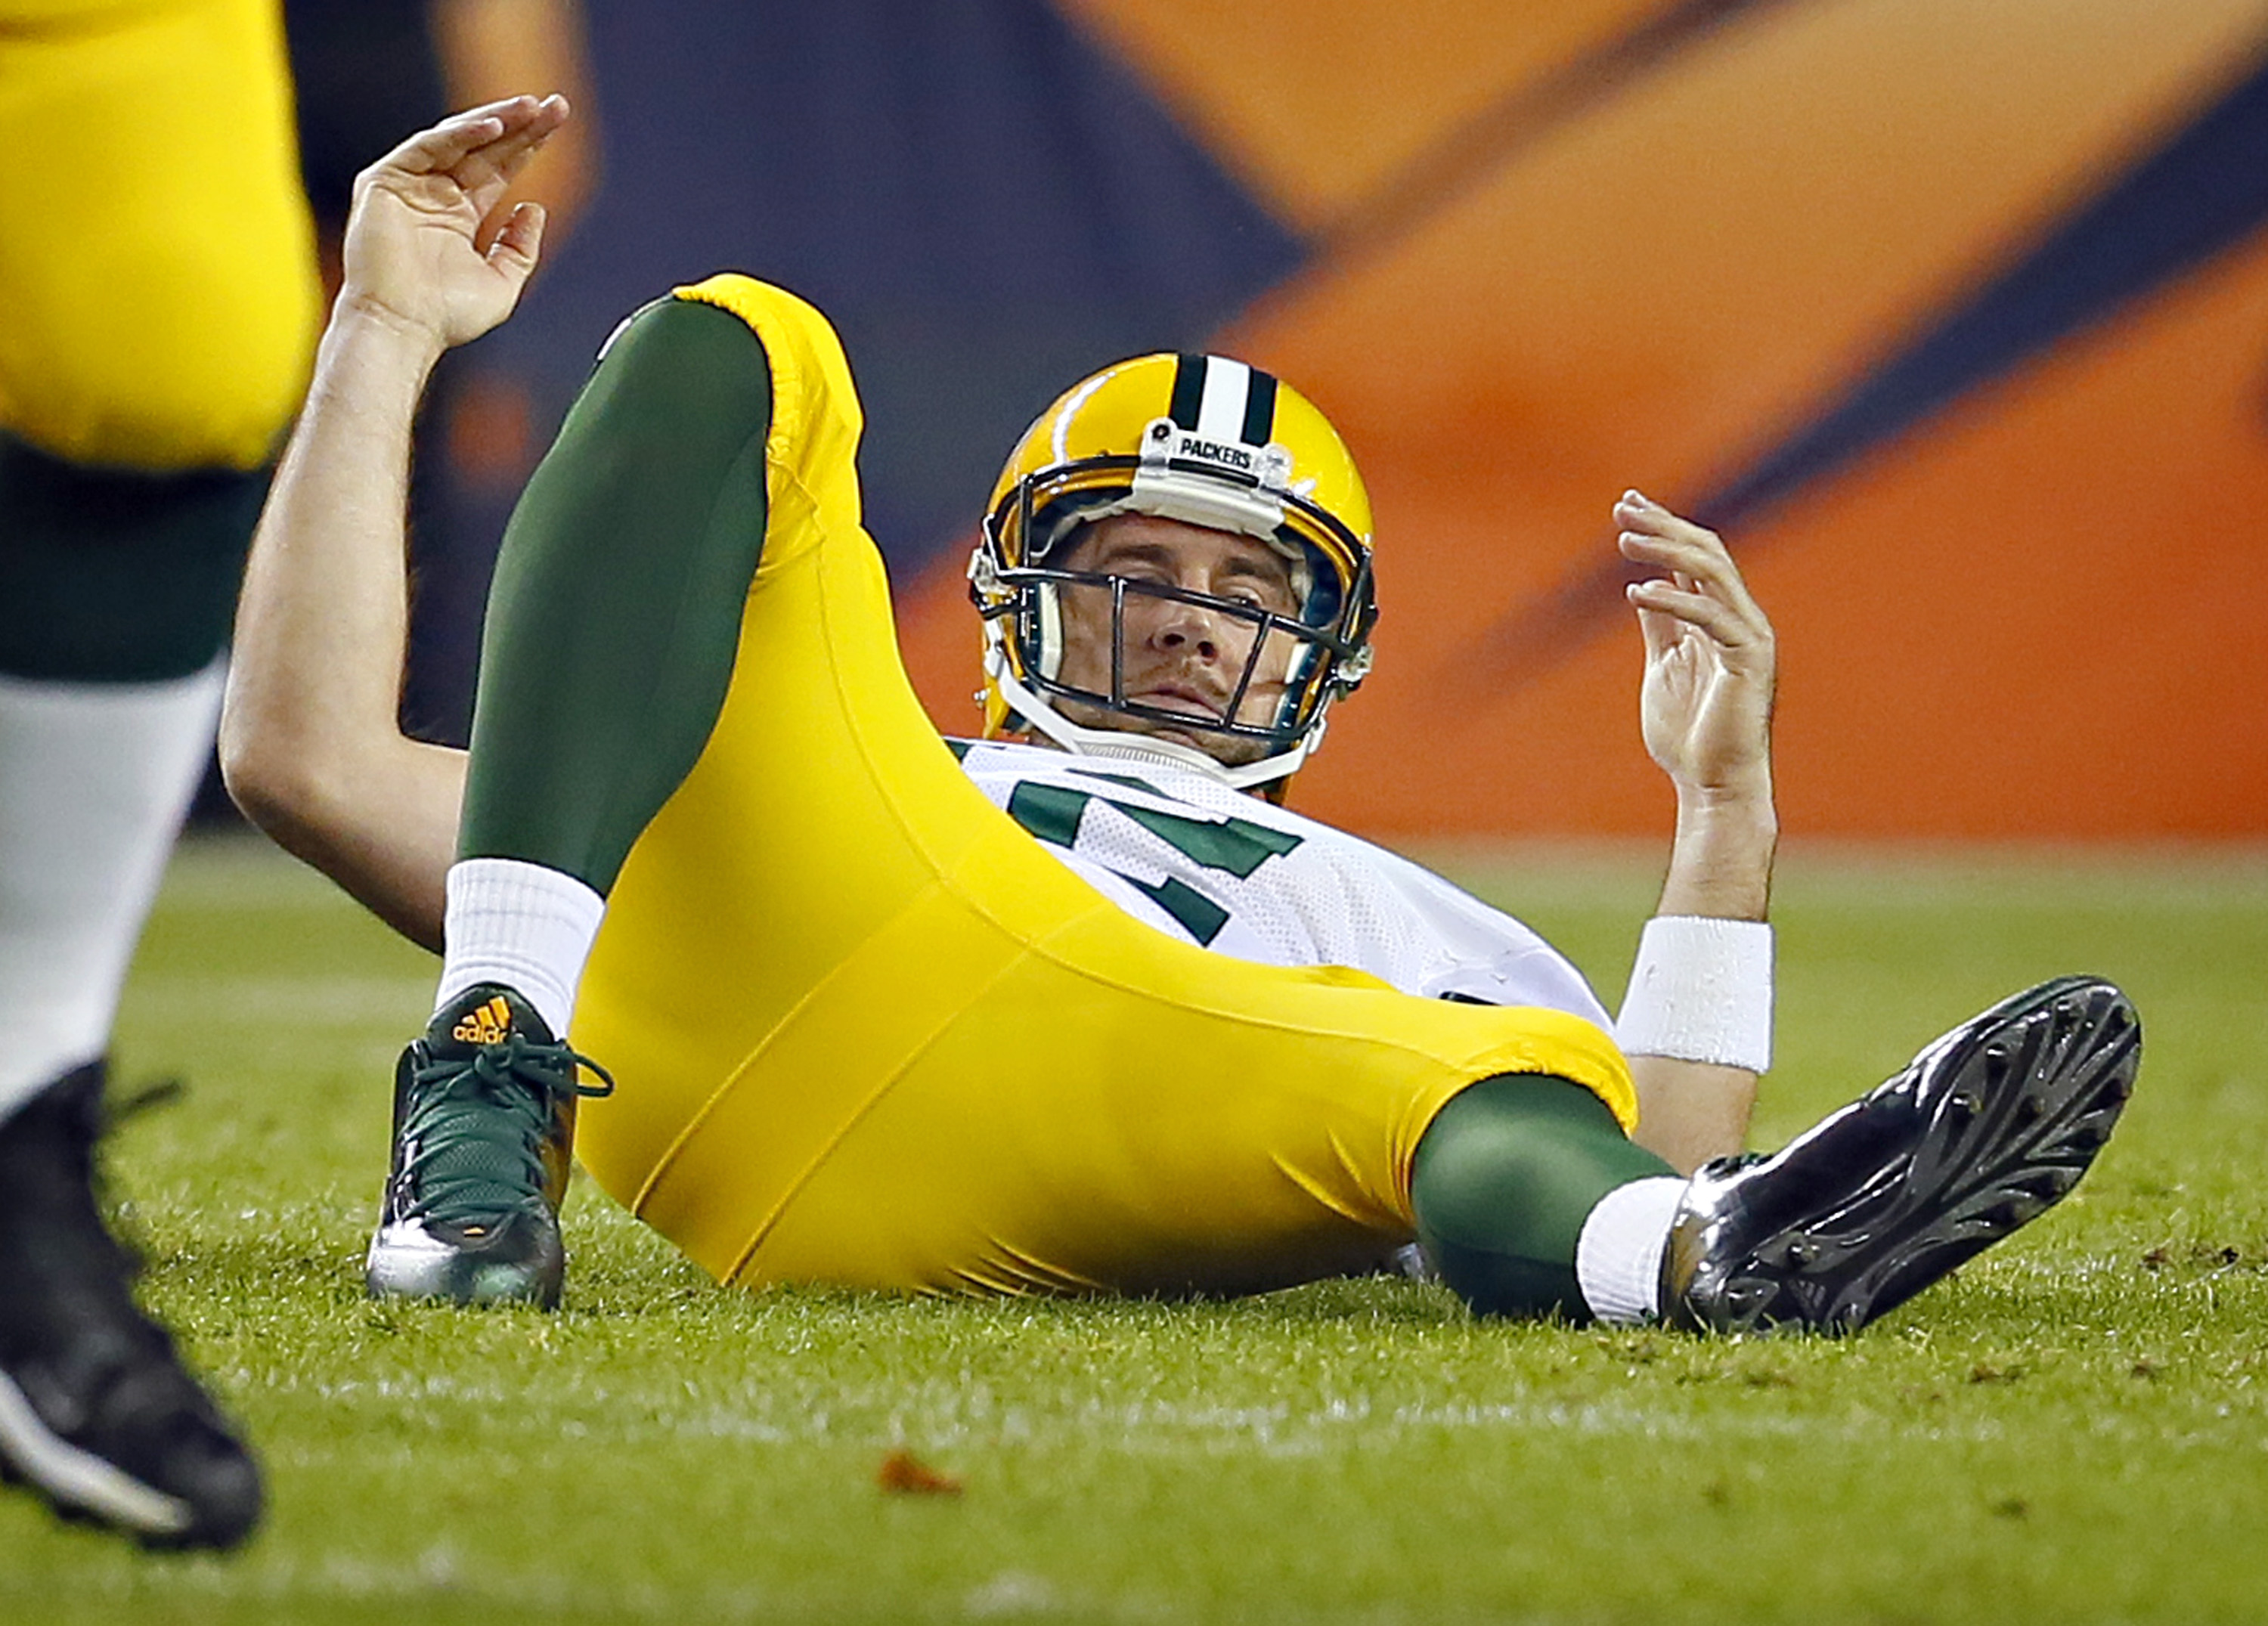 Green Bay Packers quarterback Aaron Rodgers (12) looks for a call as he lies on his back after a hit during the first half of an NFL football game against the Denver Broncos, Sunday, Nov. 1, 2015, in Denver. (AP Photo/Joe Mahoney)